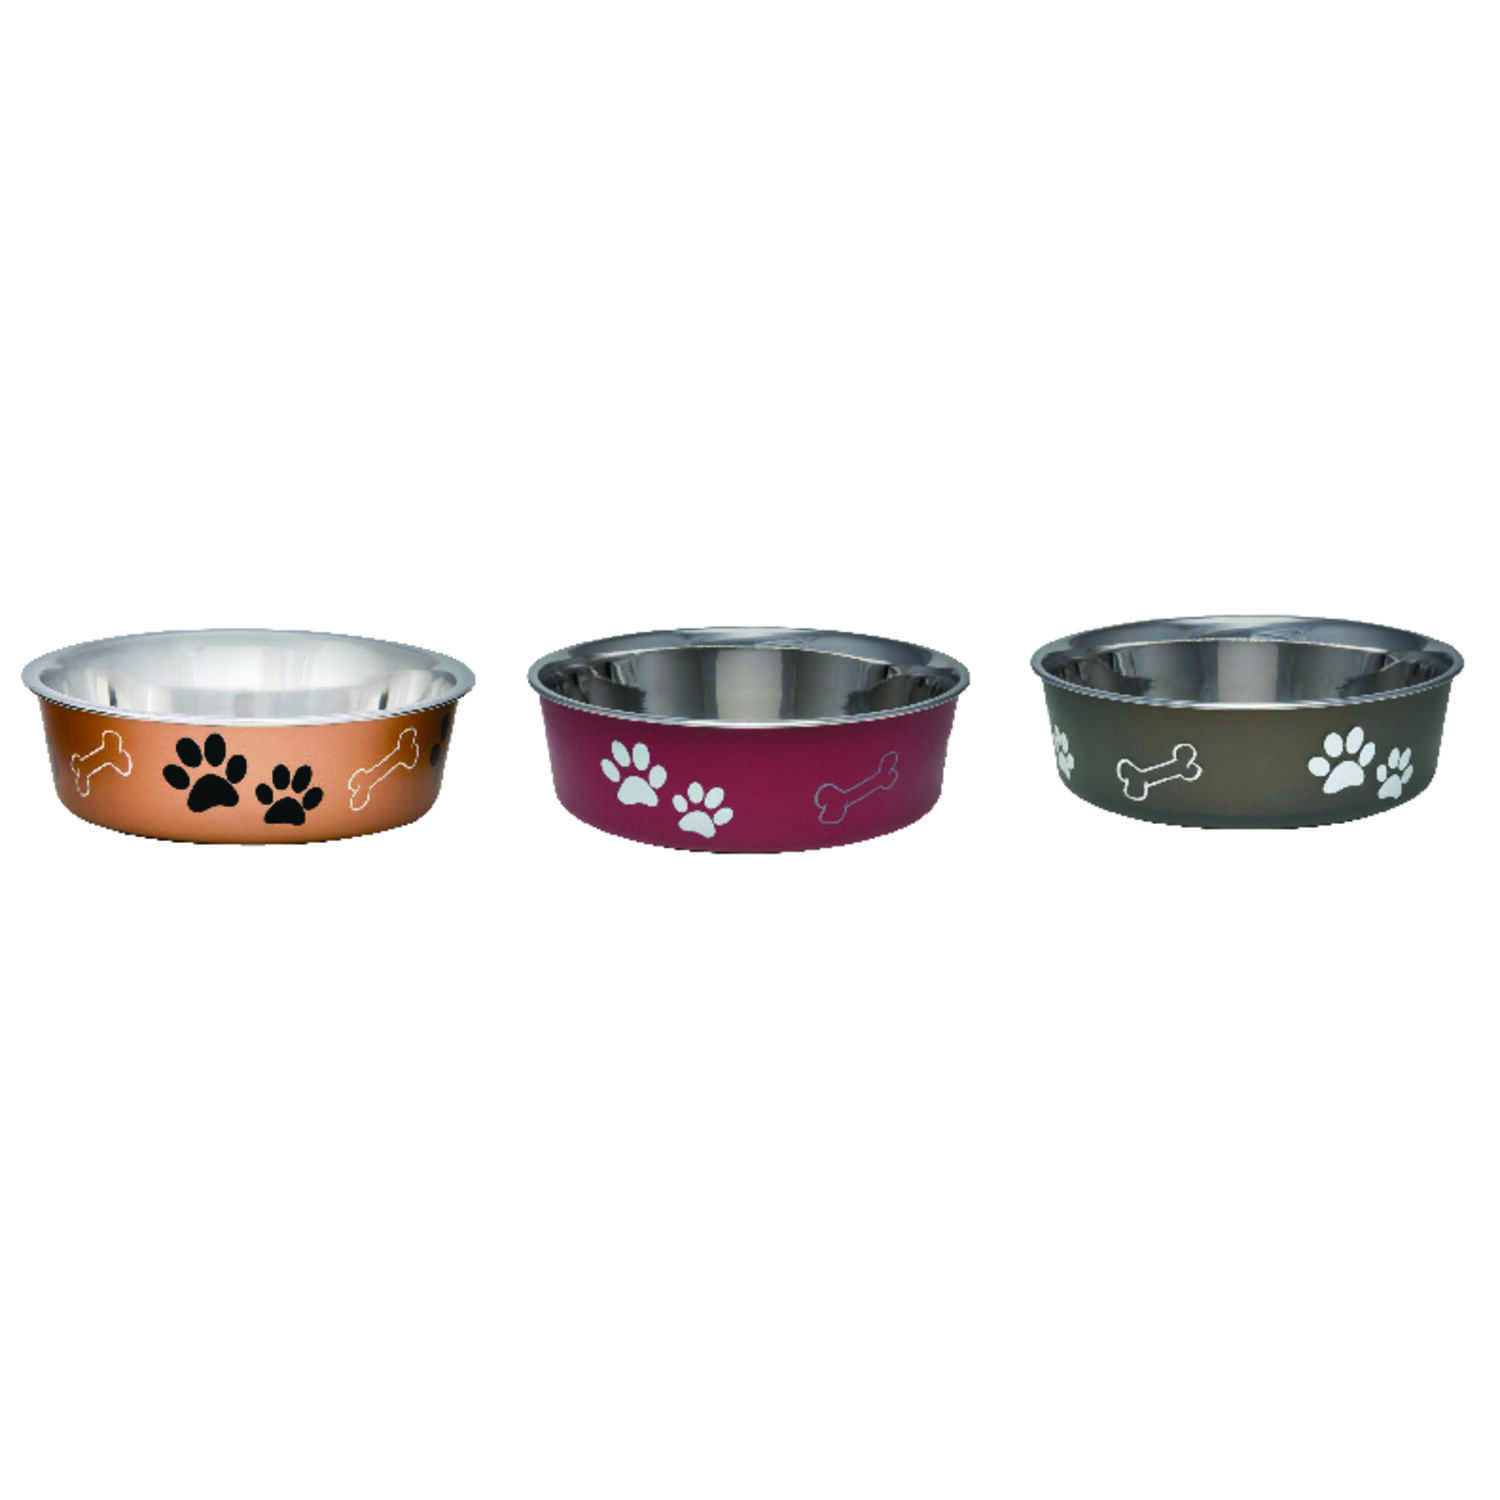 Loving Pets  Assorted  Bones and Paw Prints  Stainless Steel  Large  Pet Bowl  For Dog